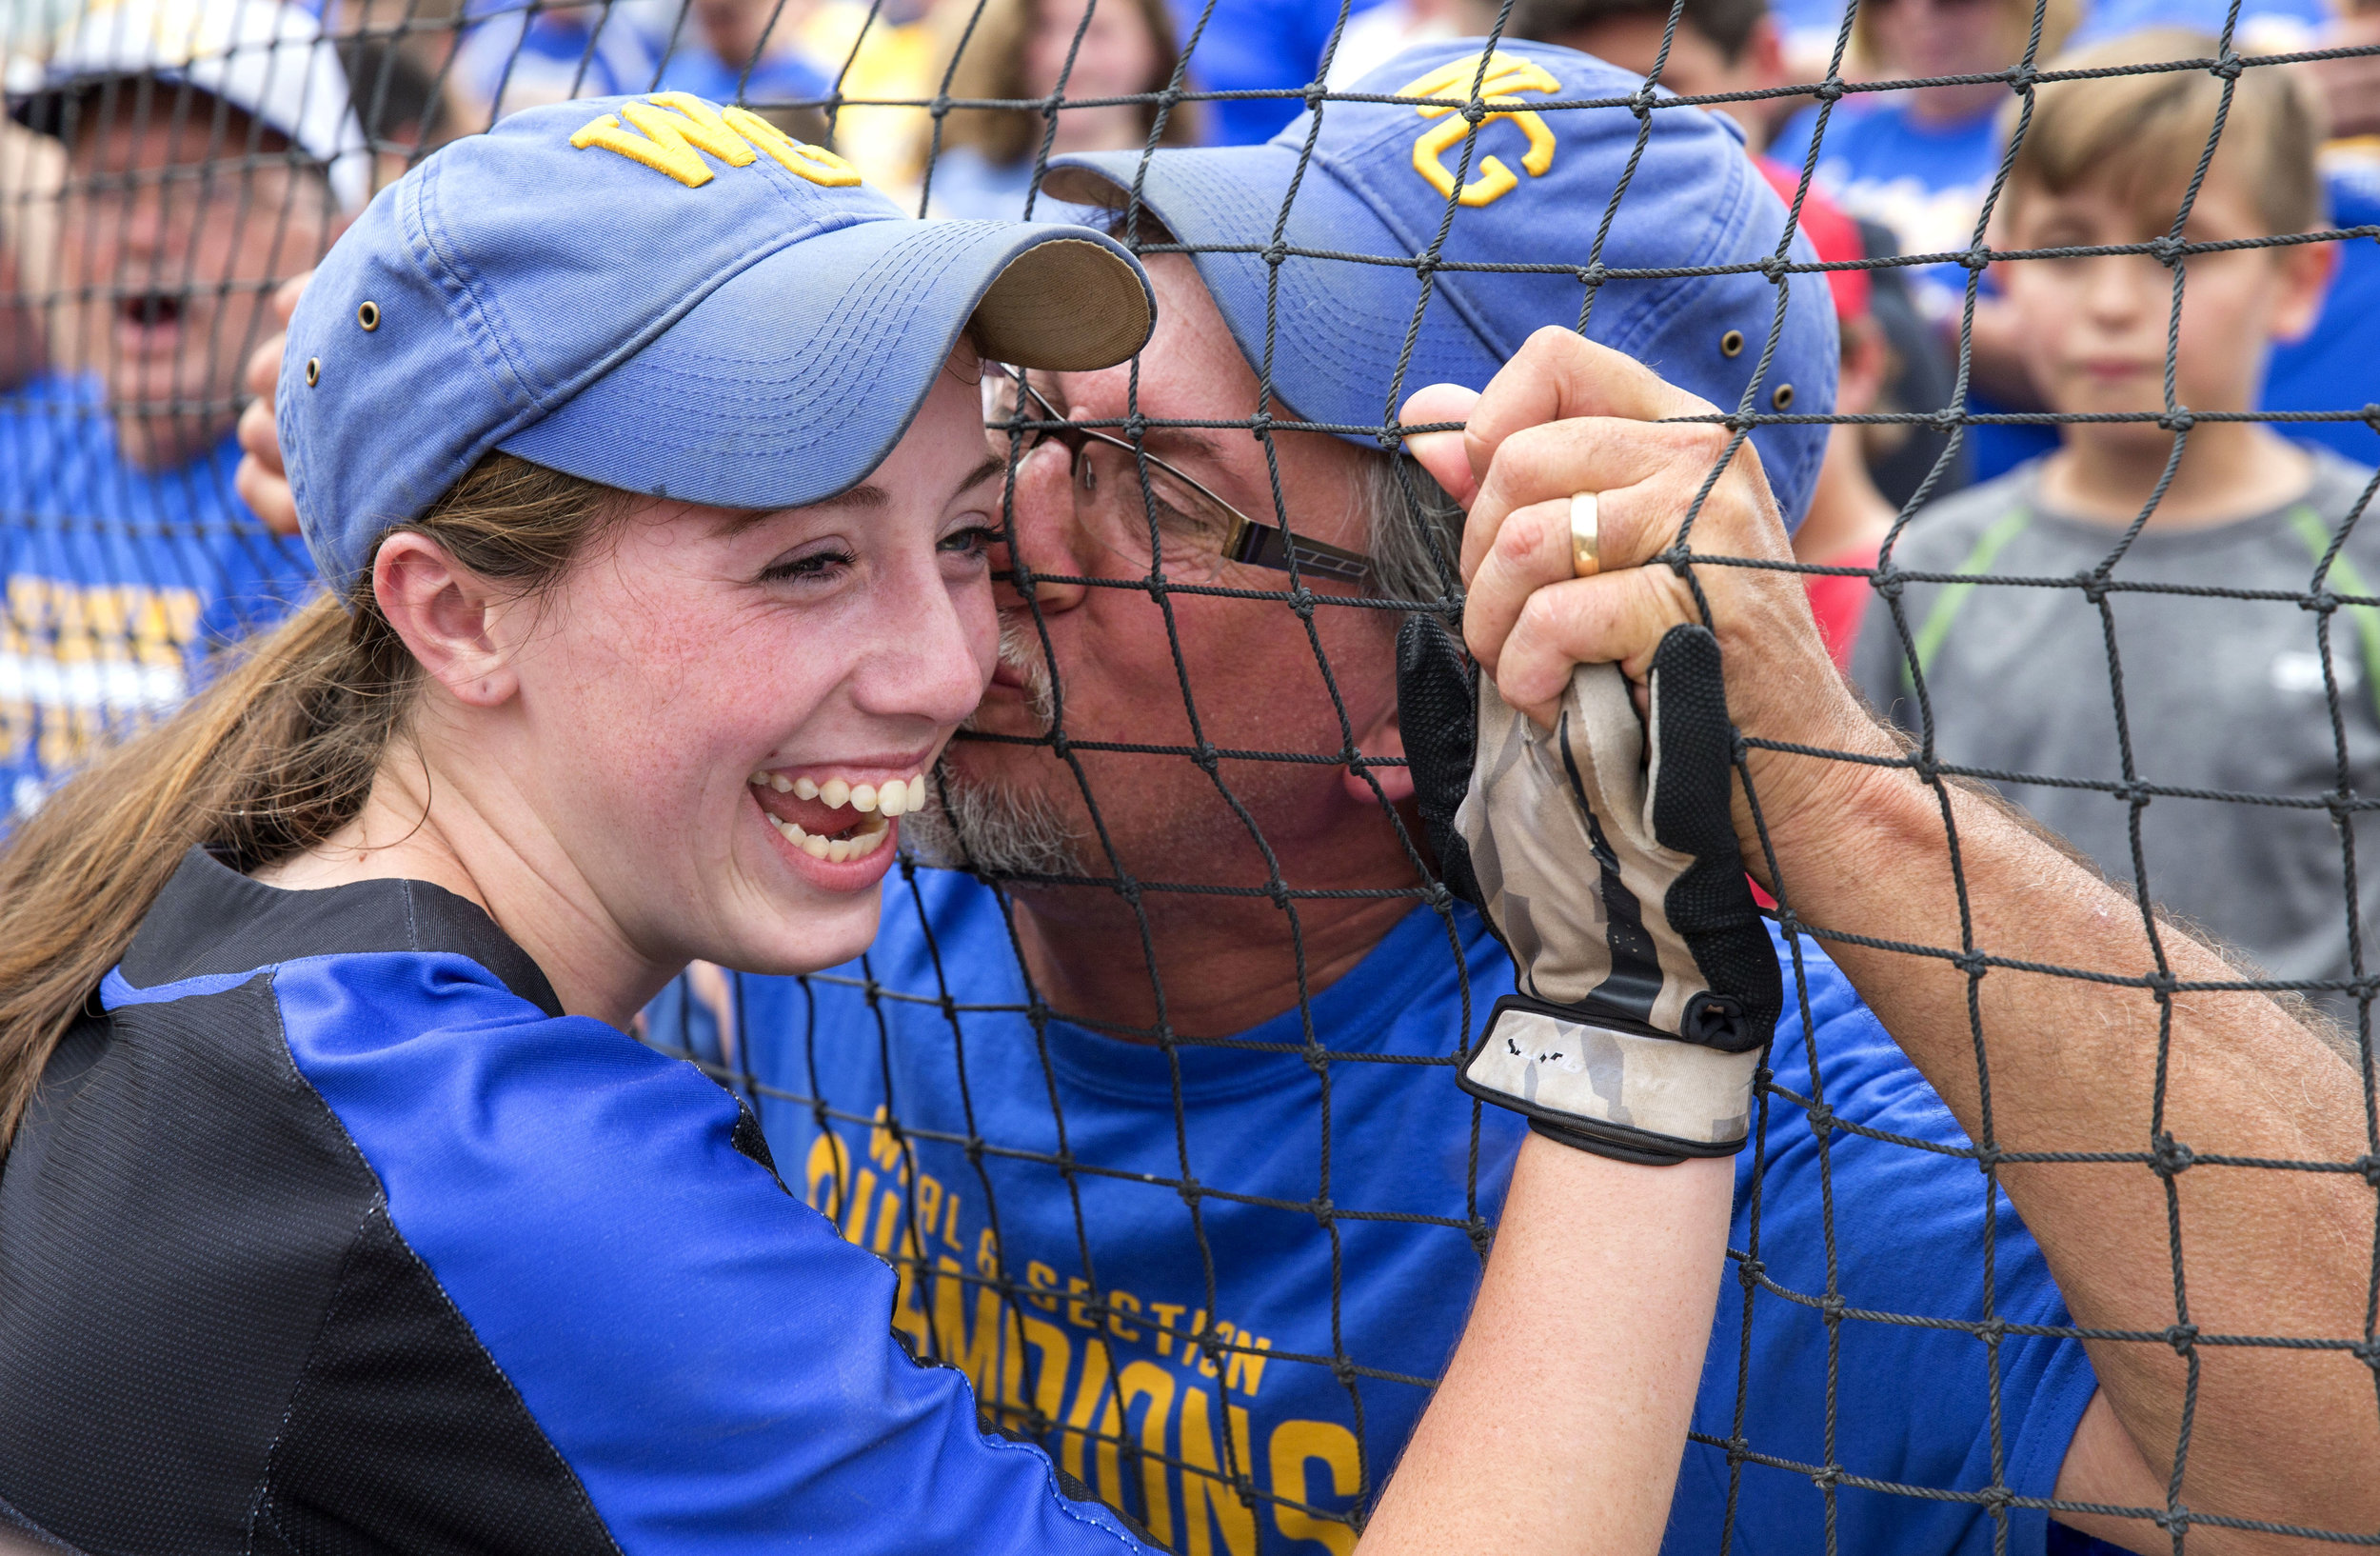 John Lampe, of West Greene, kisses his daughters cheek, Madison Lampe (4), after her team came back to win the state championship at Beard Field on Friday, June 16, 2017. West Greene was down 7-0 in the 2nd inning but rallied together to defeat Williams Valley 9-8.